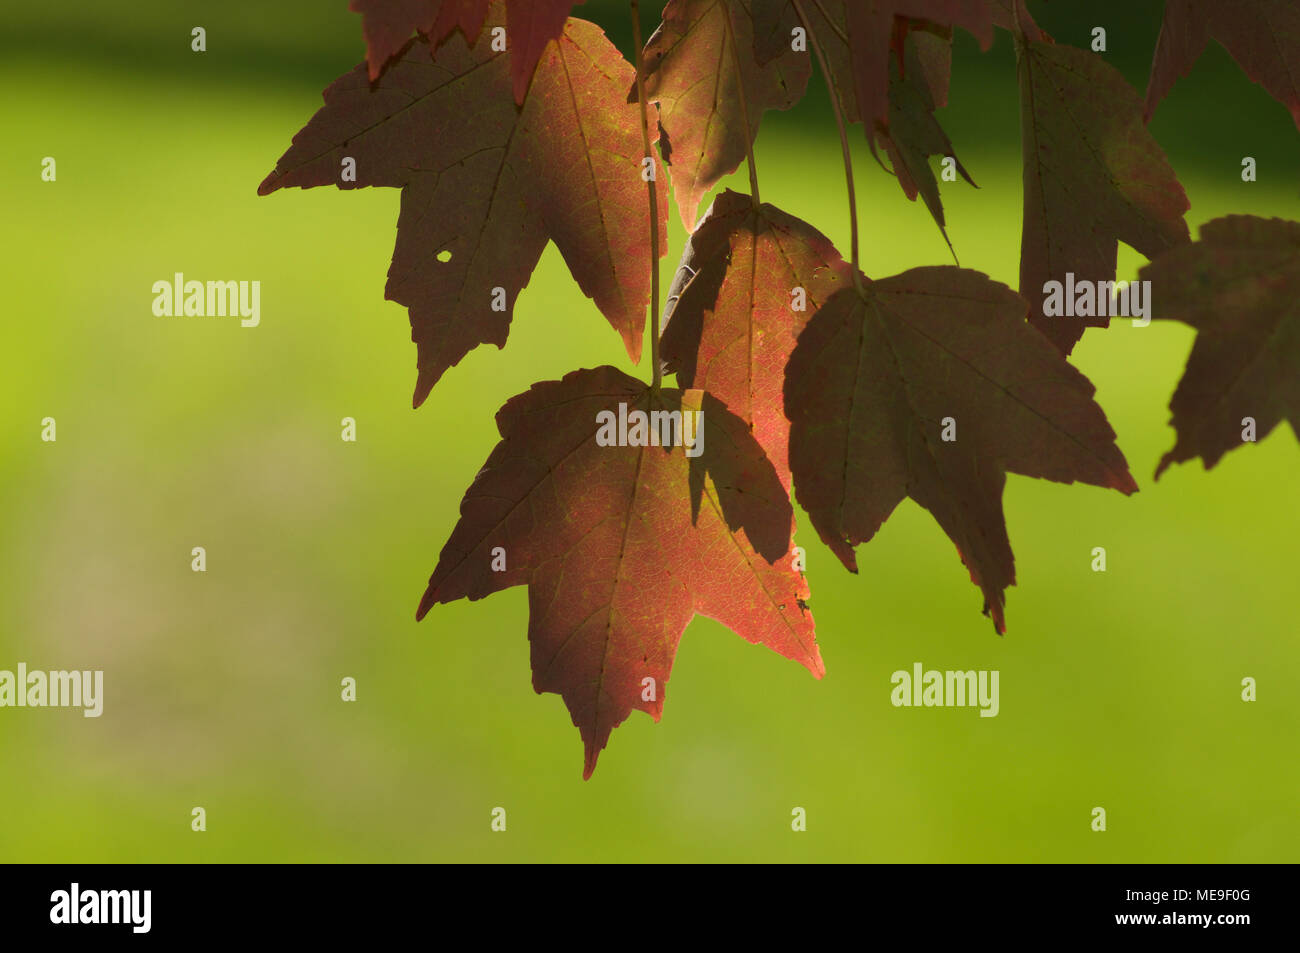 Red Fall Leaf Color Stock Photo: 180918208 - Alamy